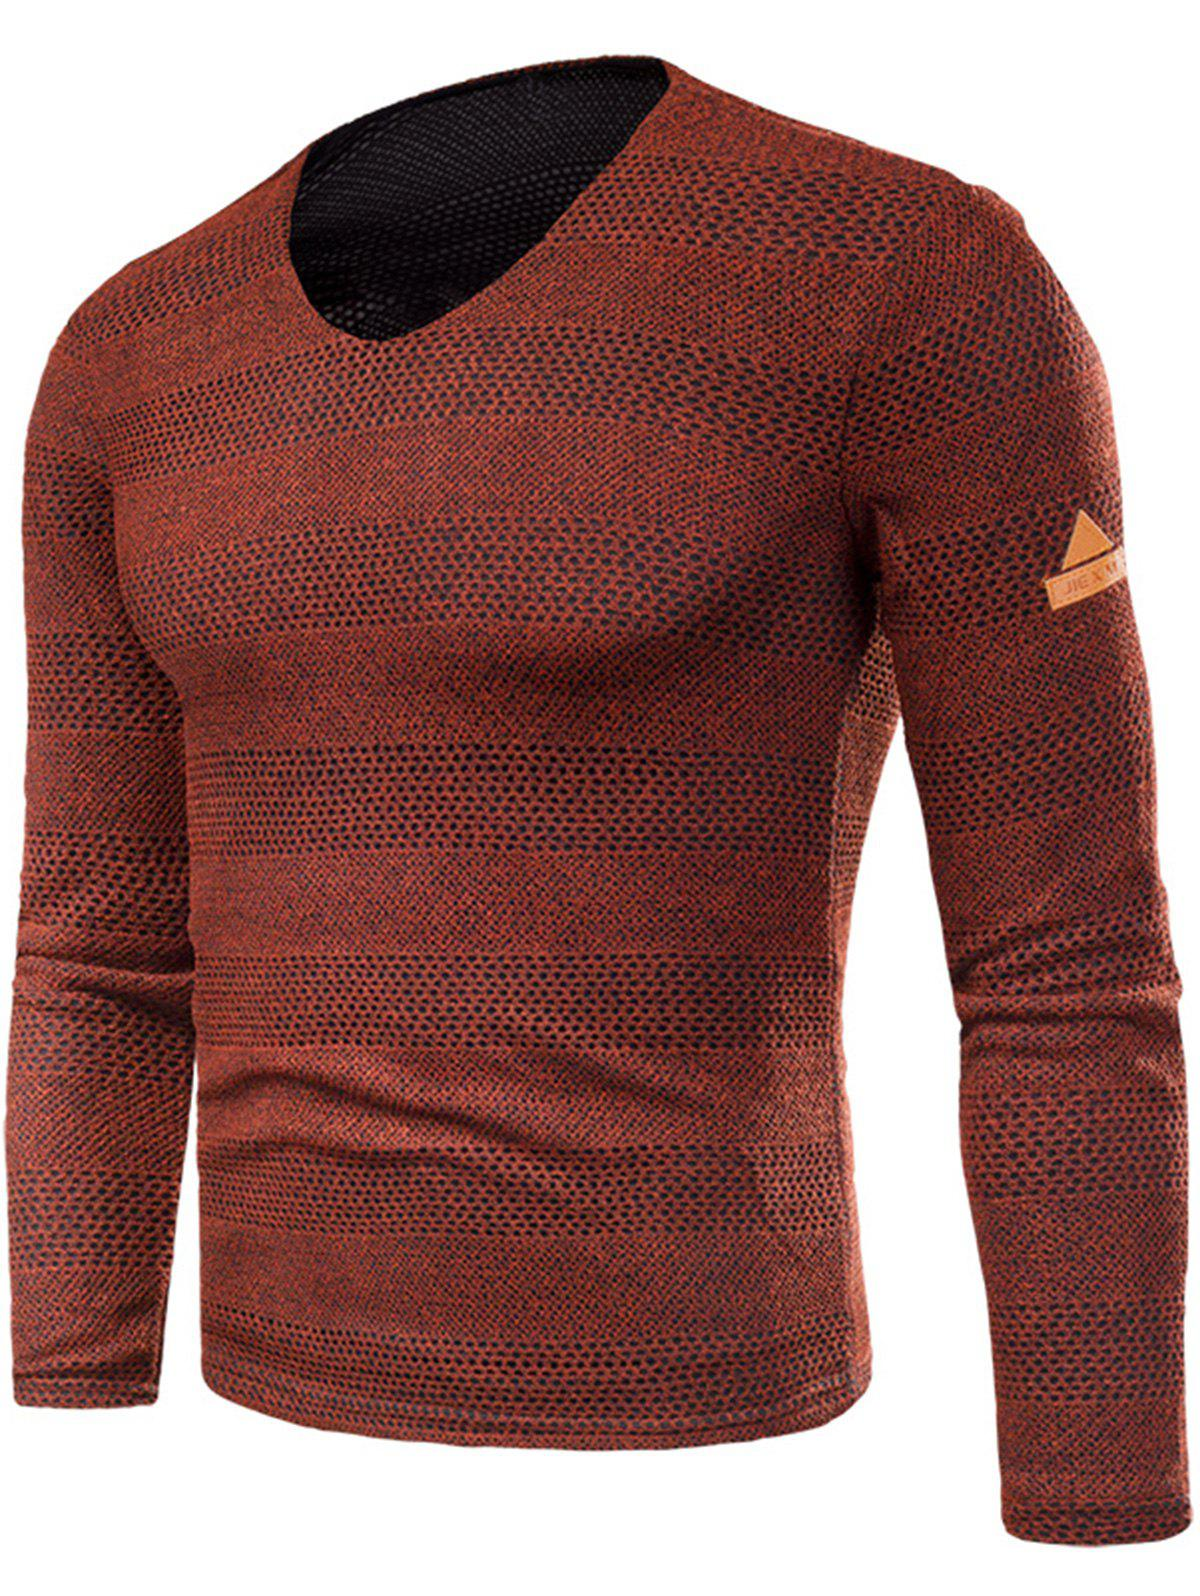 Knitted V Neck Long Sleeve T-shirt - RED 5XL